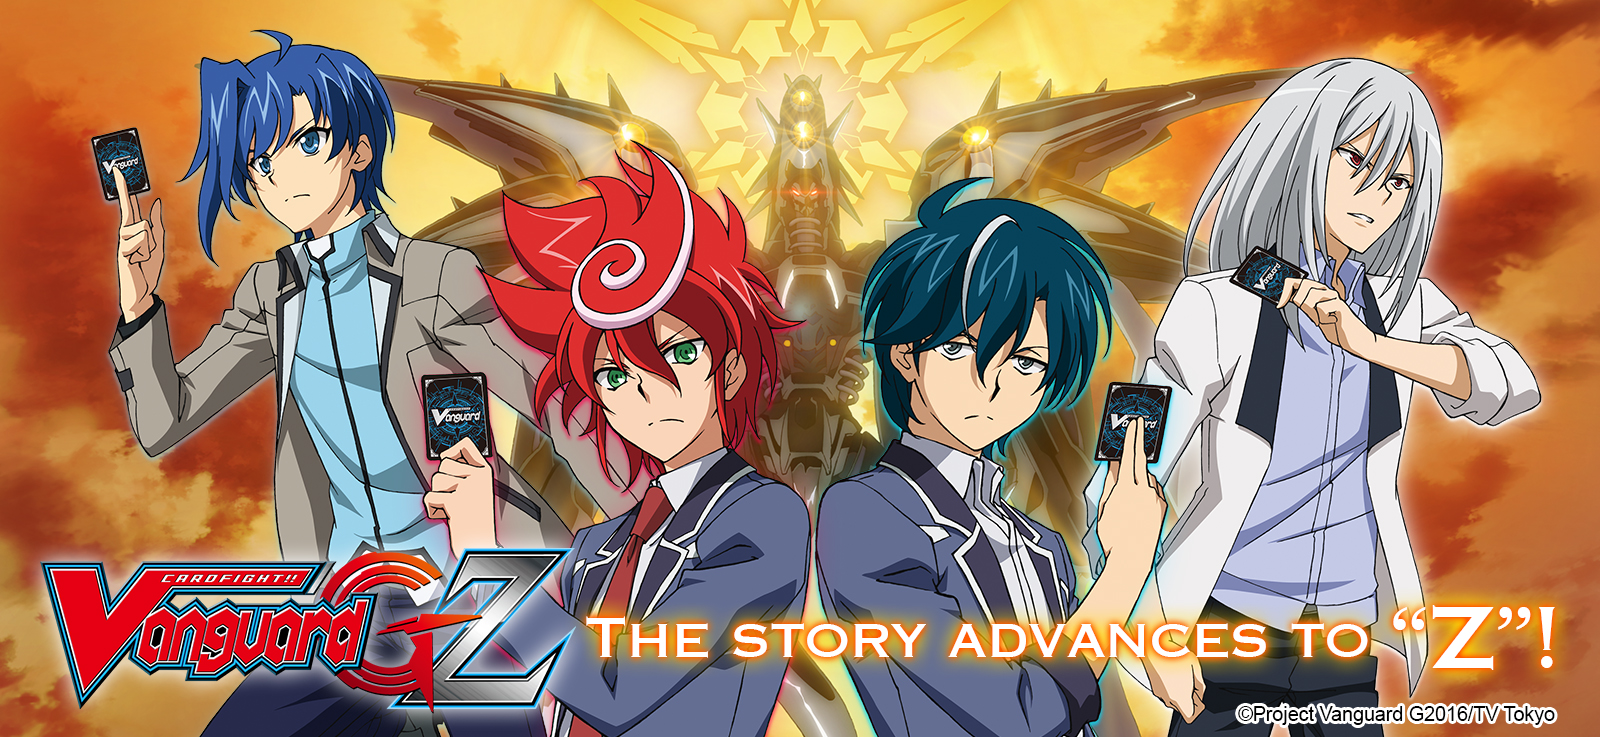 Catch the Cardfight!! Vanguard G Z Animation on the official YouTube Channel!